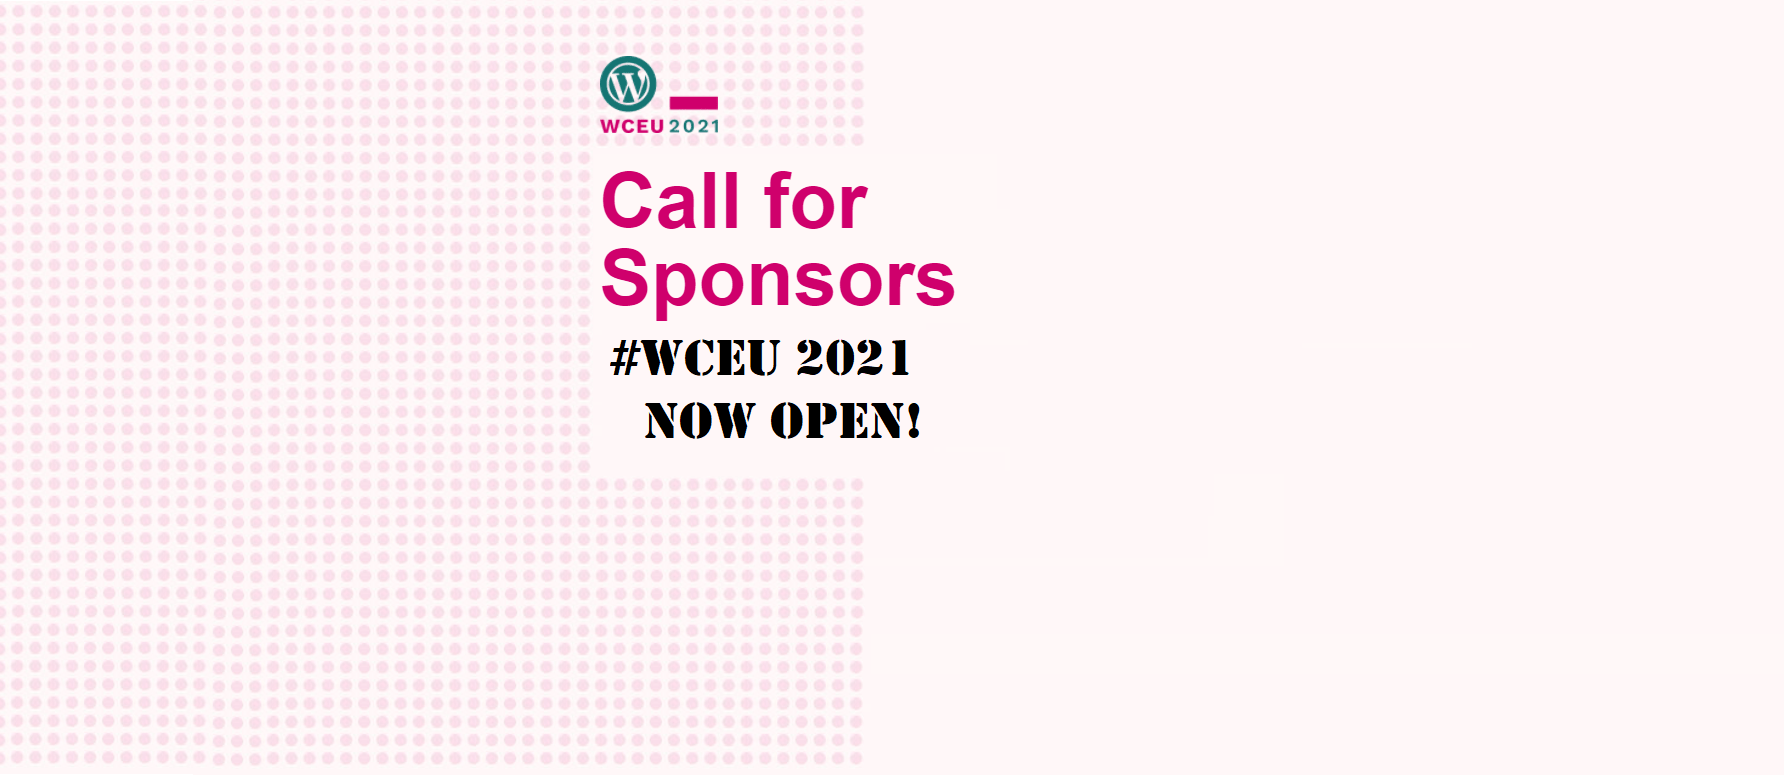 Call for Sponsors for WordCamp Europe 2021 is Open #WCEU